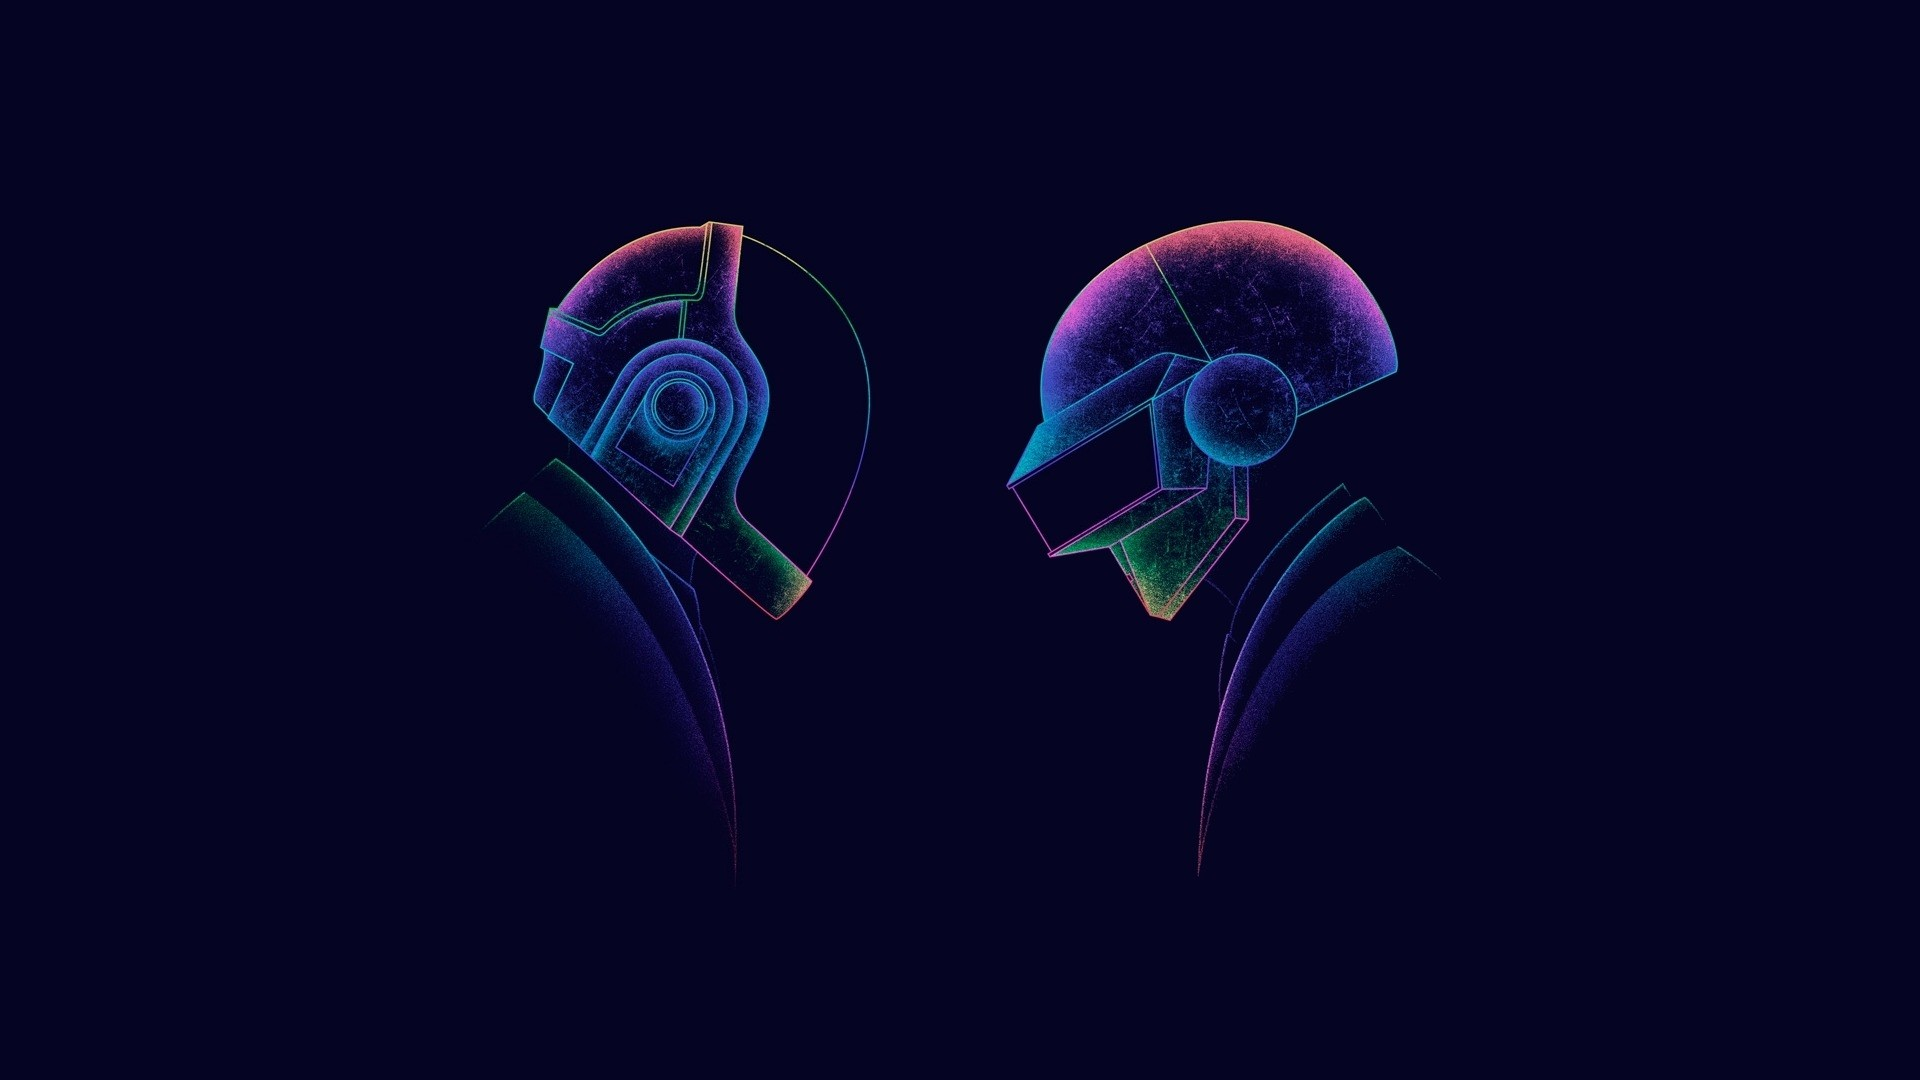 Daft Punk Wallpaper and Background